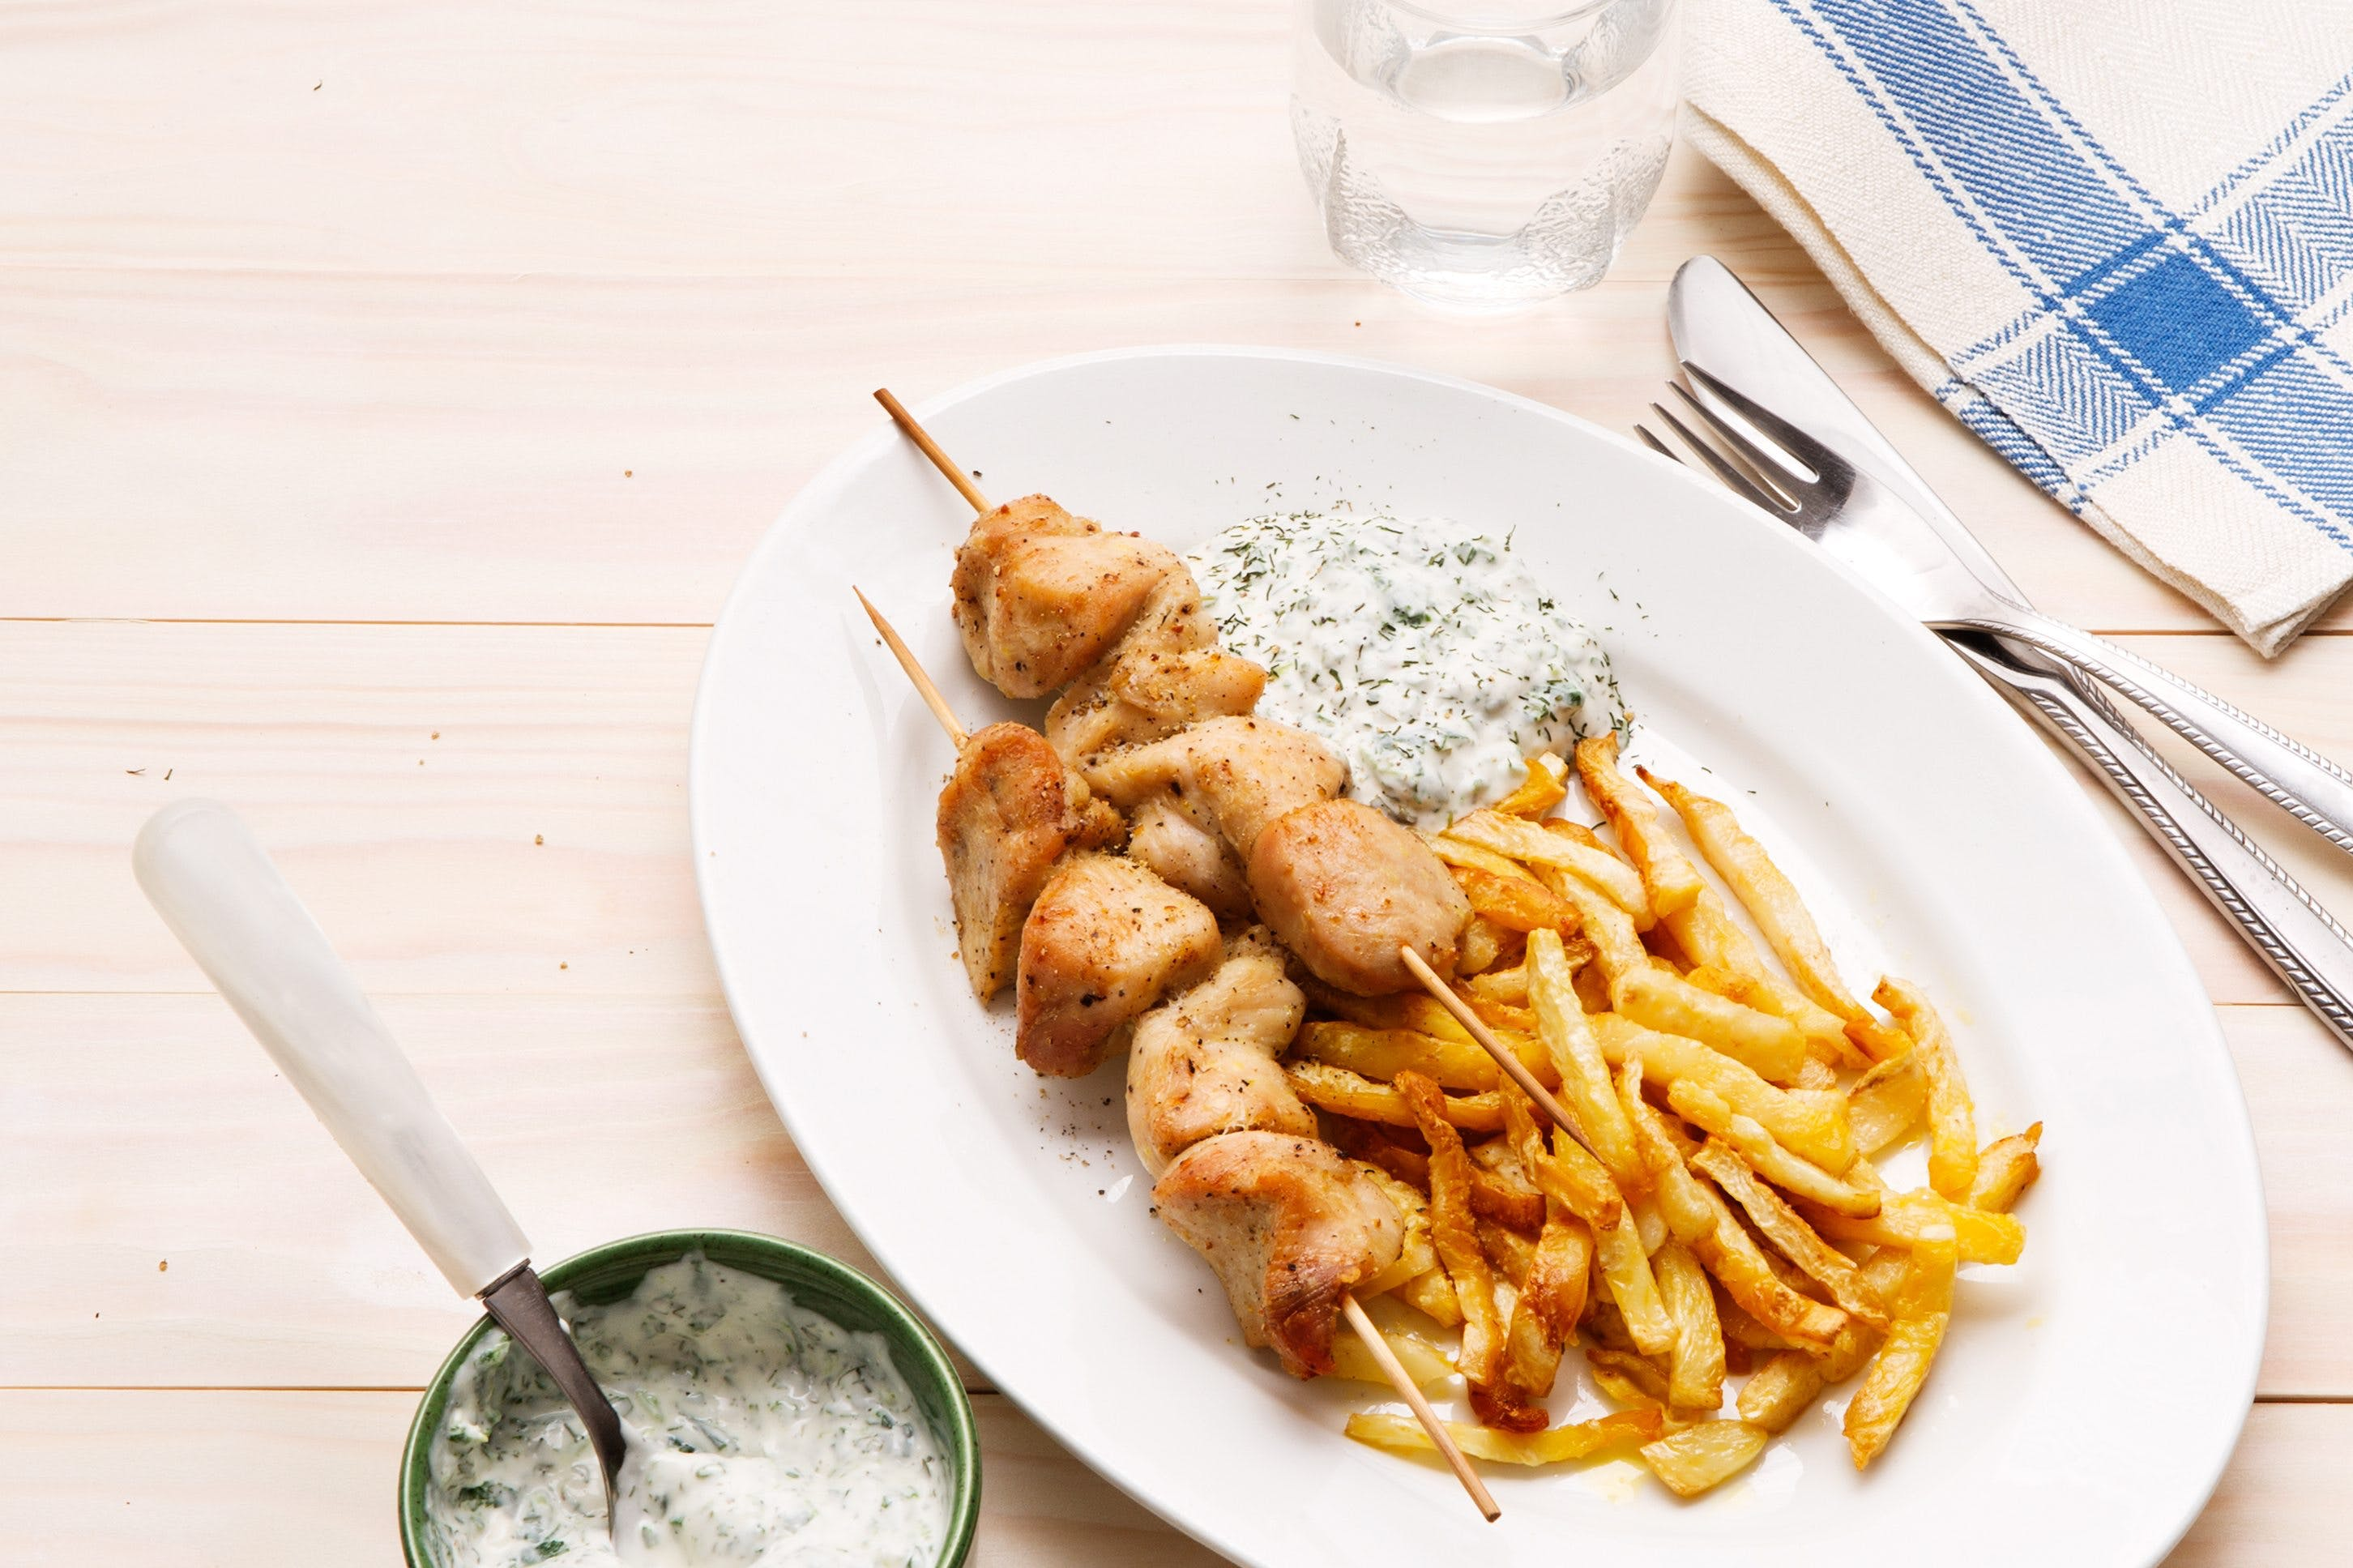 Chicken Skewers with Root Celery Fries and Spinach Dip